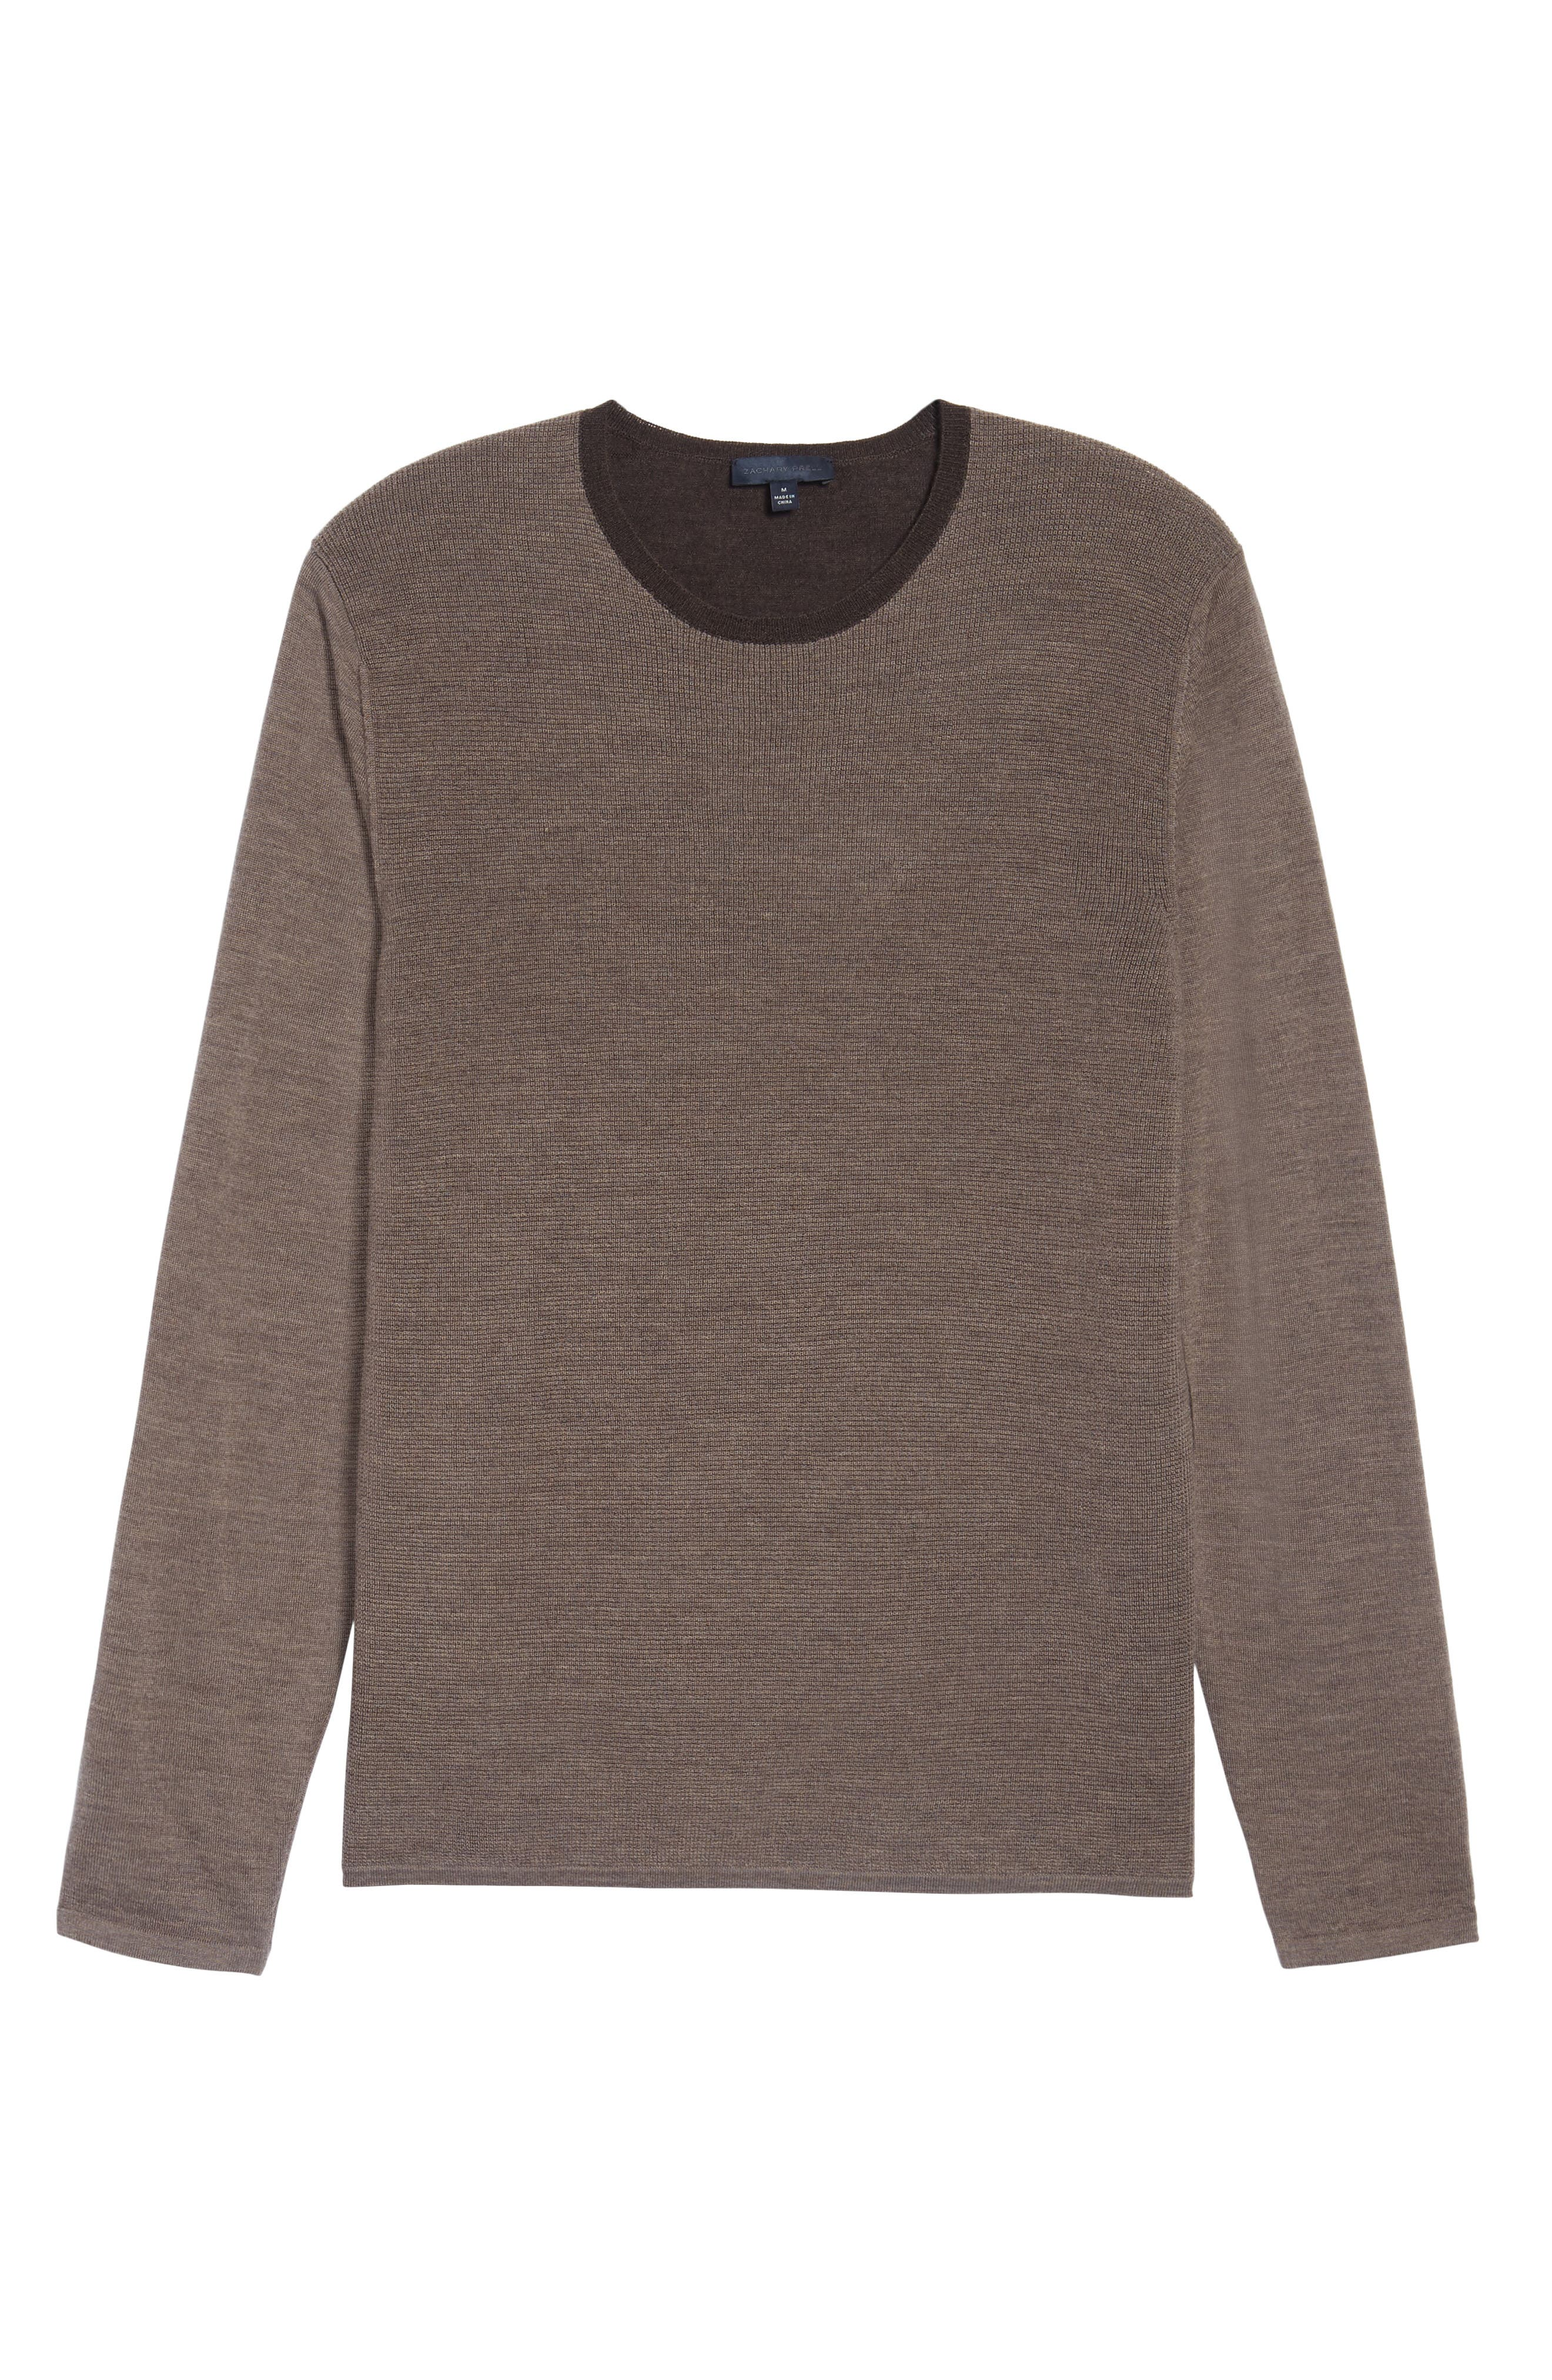 Huxley Merino Sweater,                             Alternate thumbnail 6, color,                             Light Coffee